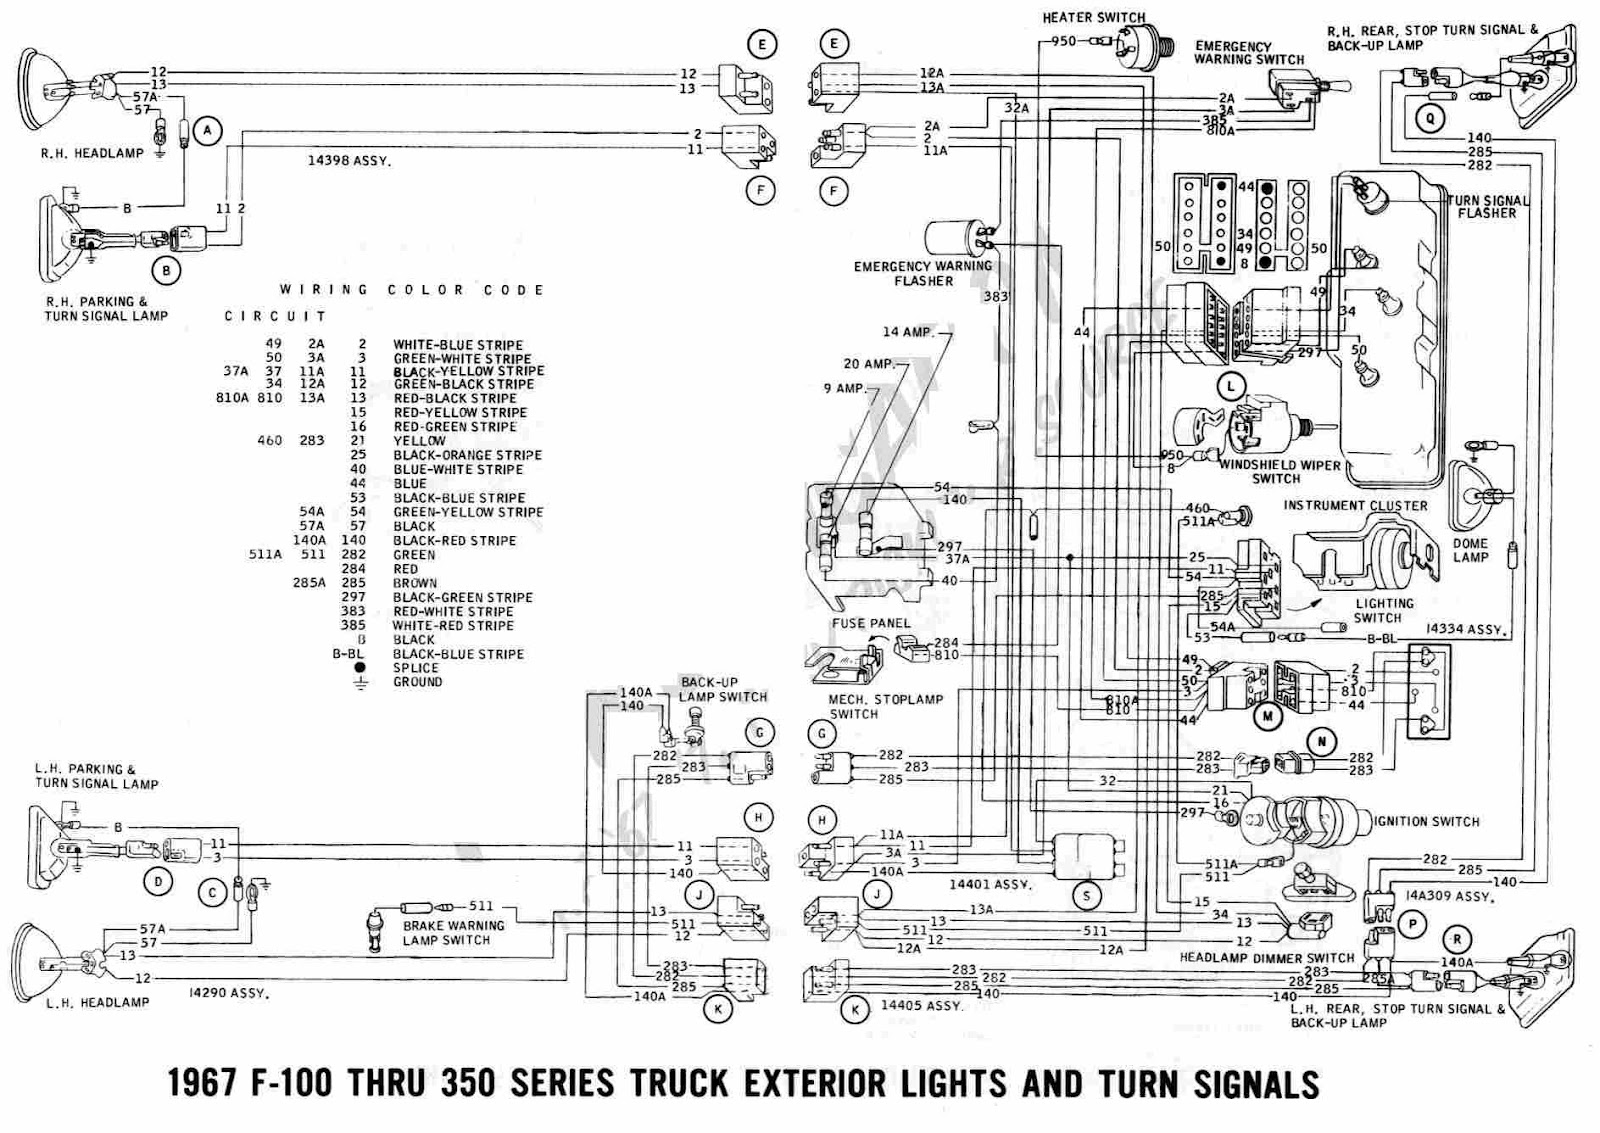 Ford+F 100+Through+F 350+Truck+1967+Exterior+Lights+and+Turn+Signals+Wiring+Diagram wiring diagram for 1972 ford f100 the wiring diagram 1966 ford f100 wiring diagram at gsmx.co